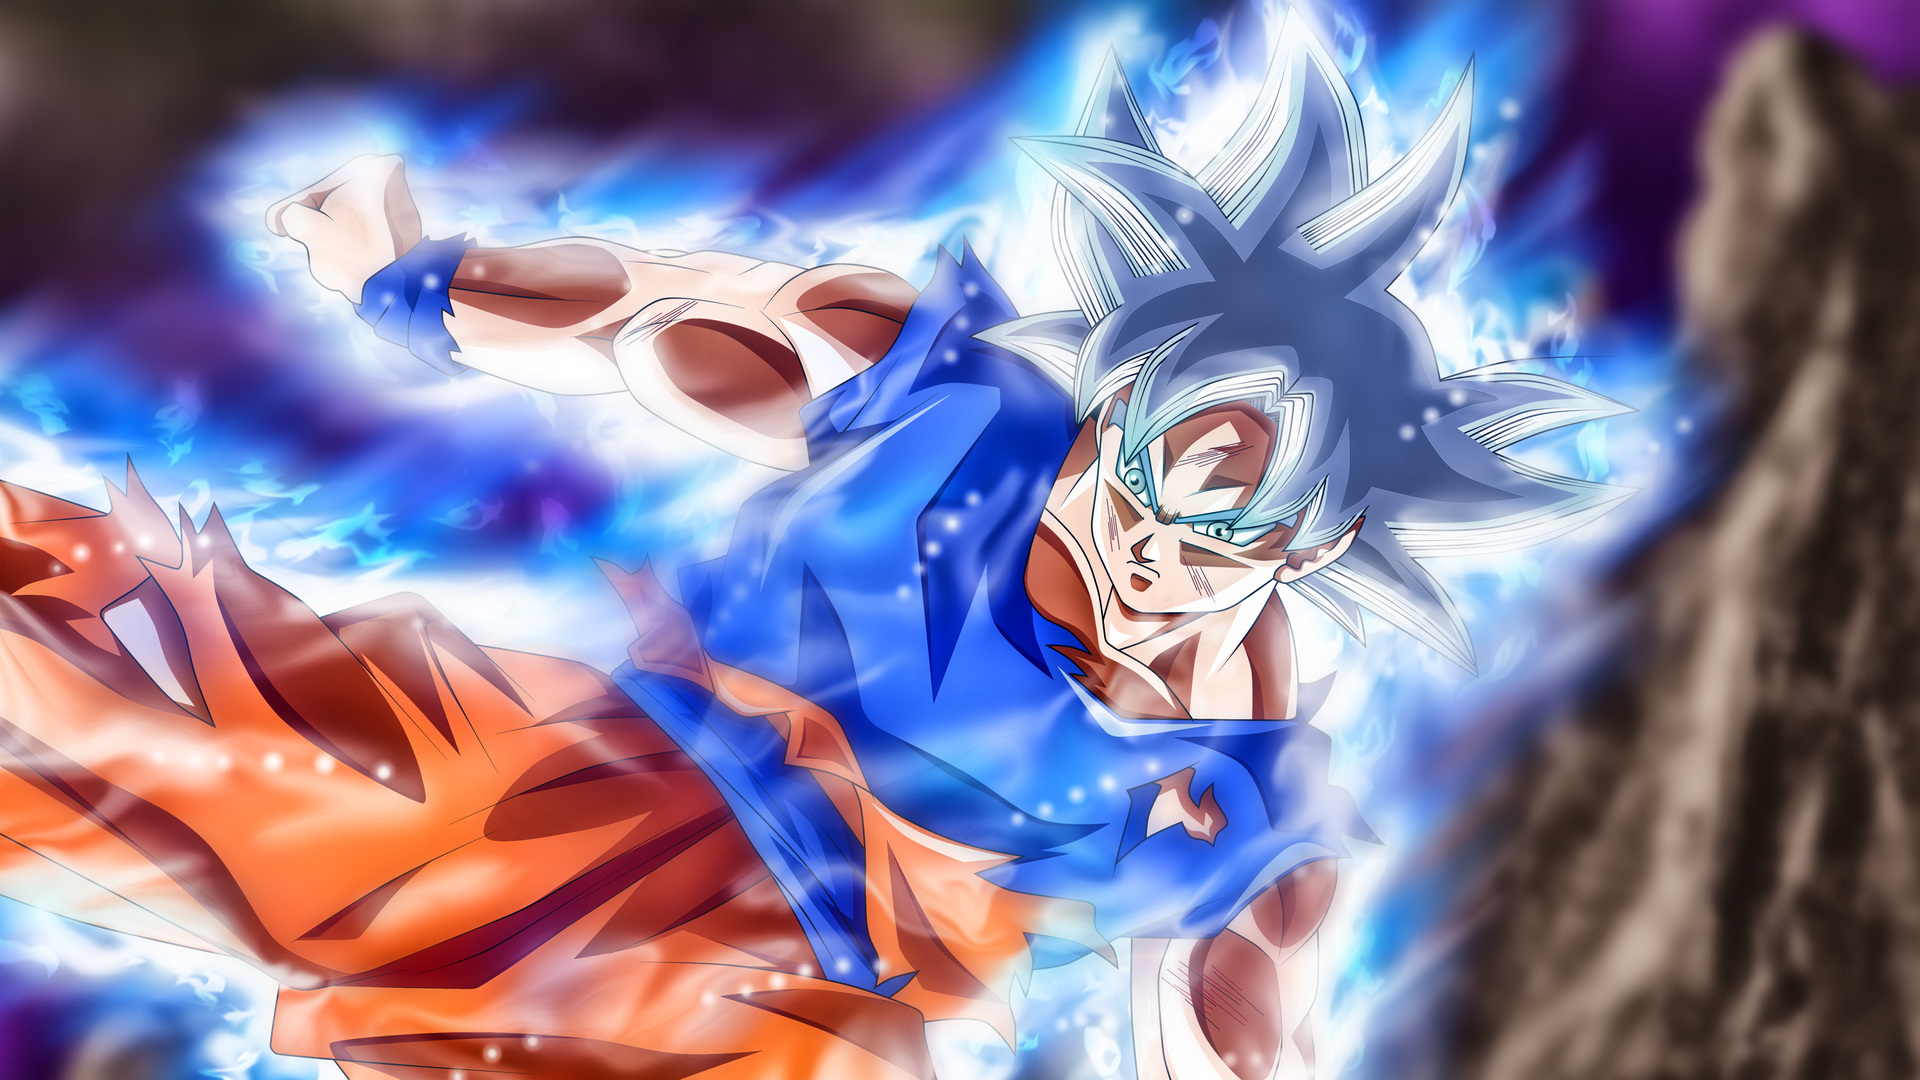 Goku Ultra Instinct Wallpaper Hd: 1920x1080 Goku Jiren Masterd Ultra Instinct Laptop Full HD